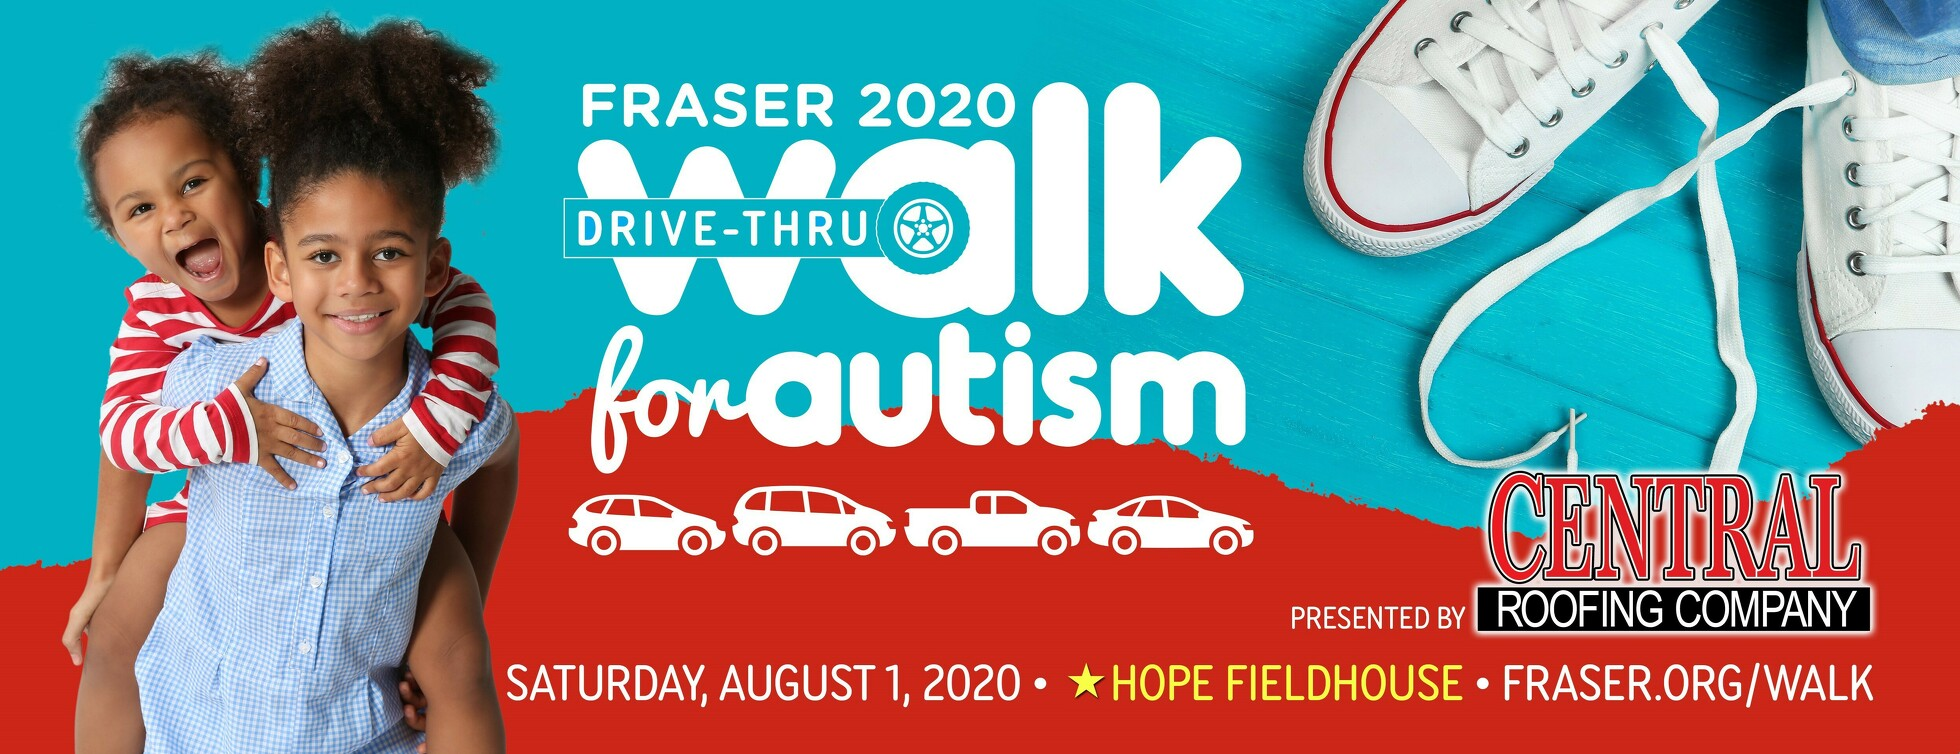 2020 Fraser Walk for Autism